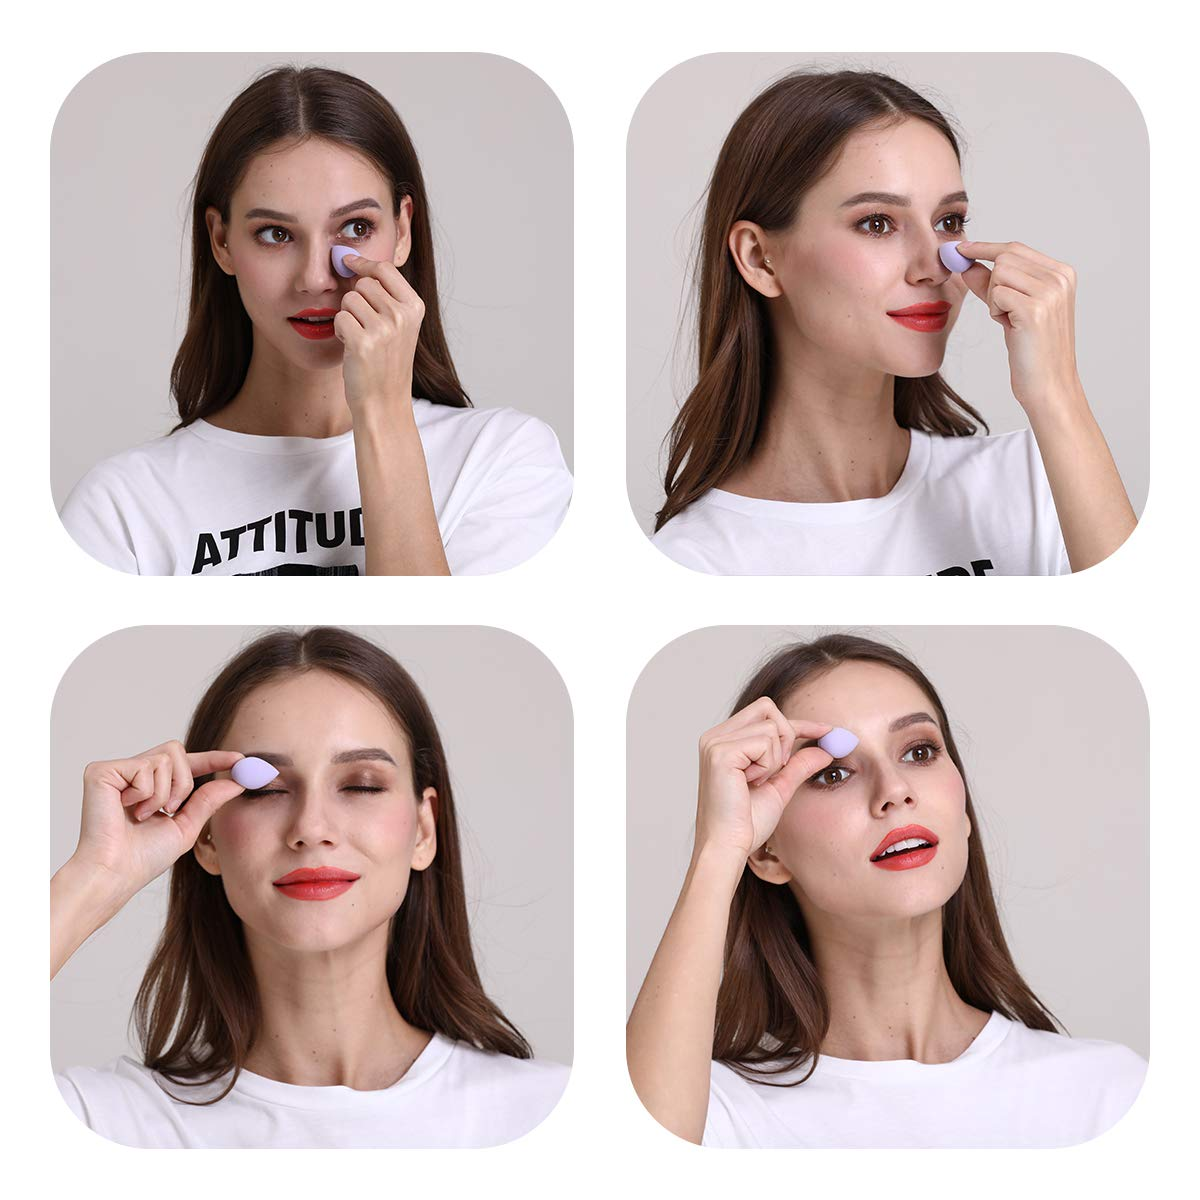 Mini Makeup Blenders Blender Pack 6 Pcs, Mini Beauty Sponge Multi-Color for Foundation Powder Concealer Liquid and BB Cream, Apply to Your Concealer and Under Eyes, Highlight and Contour, LATEX Free. : Beauty